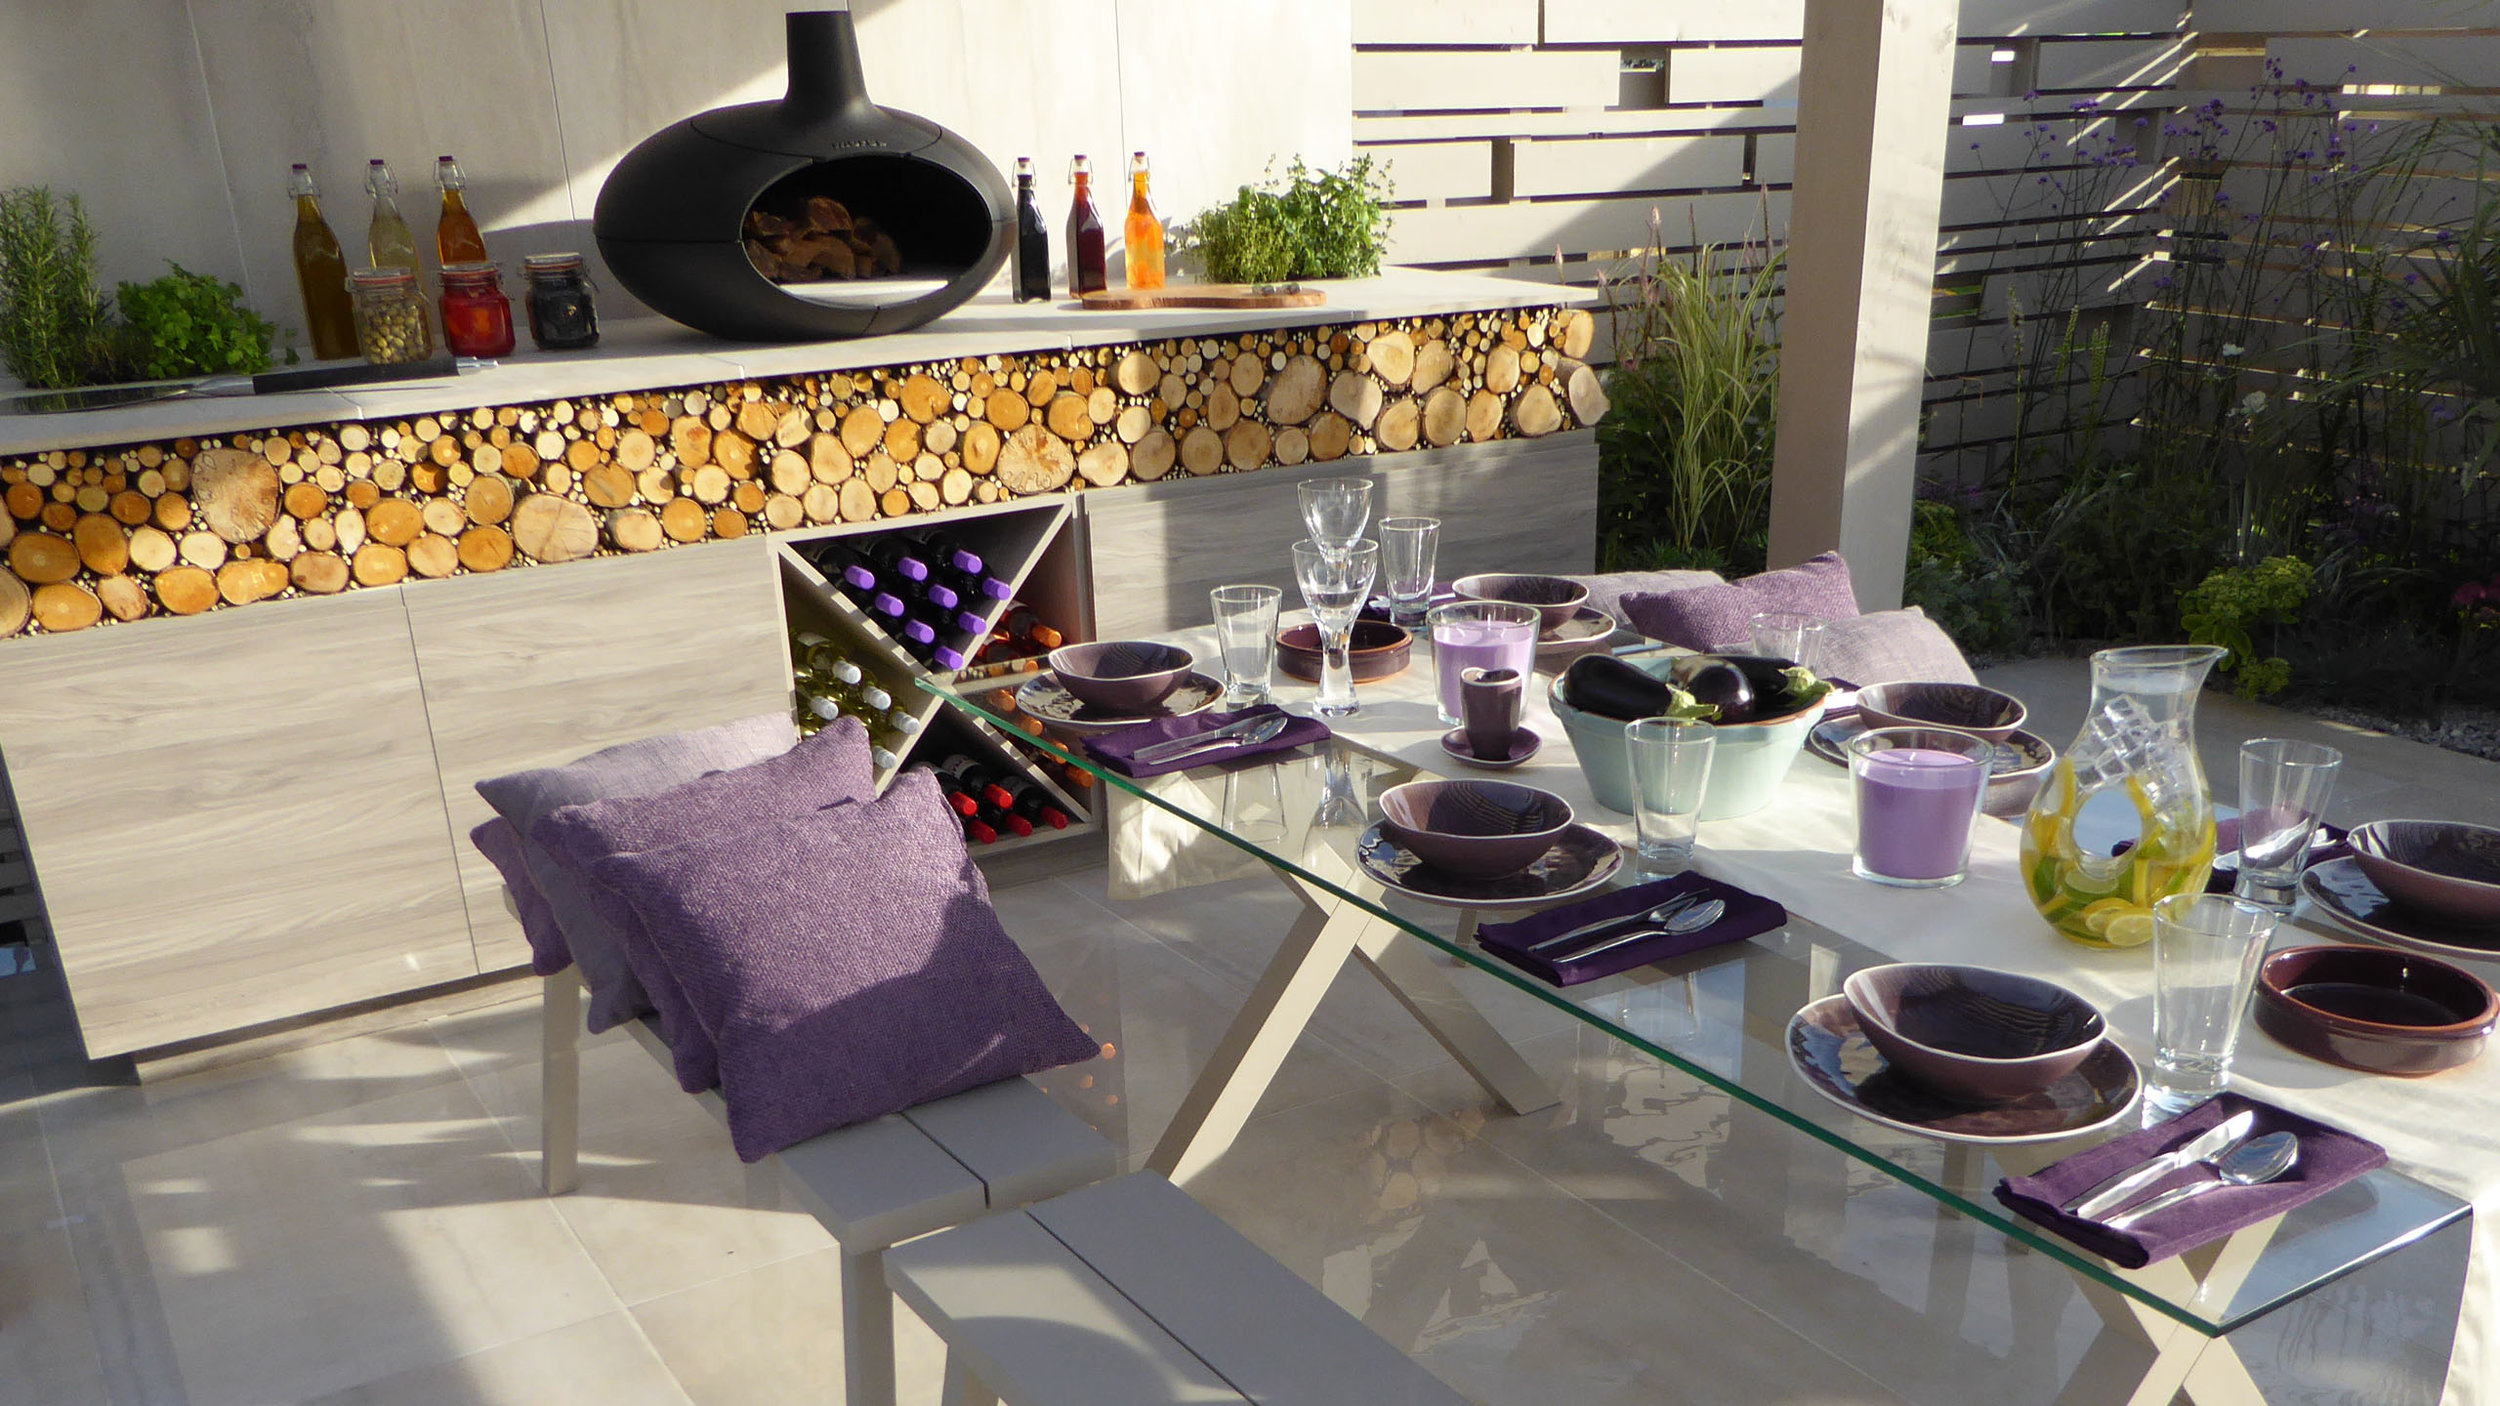 Southport Garden Design: A View Of The Olive Tree: Outdoor Kitchen, Morso Oven and Seating Area